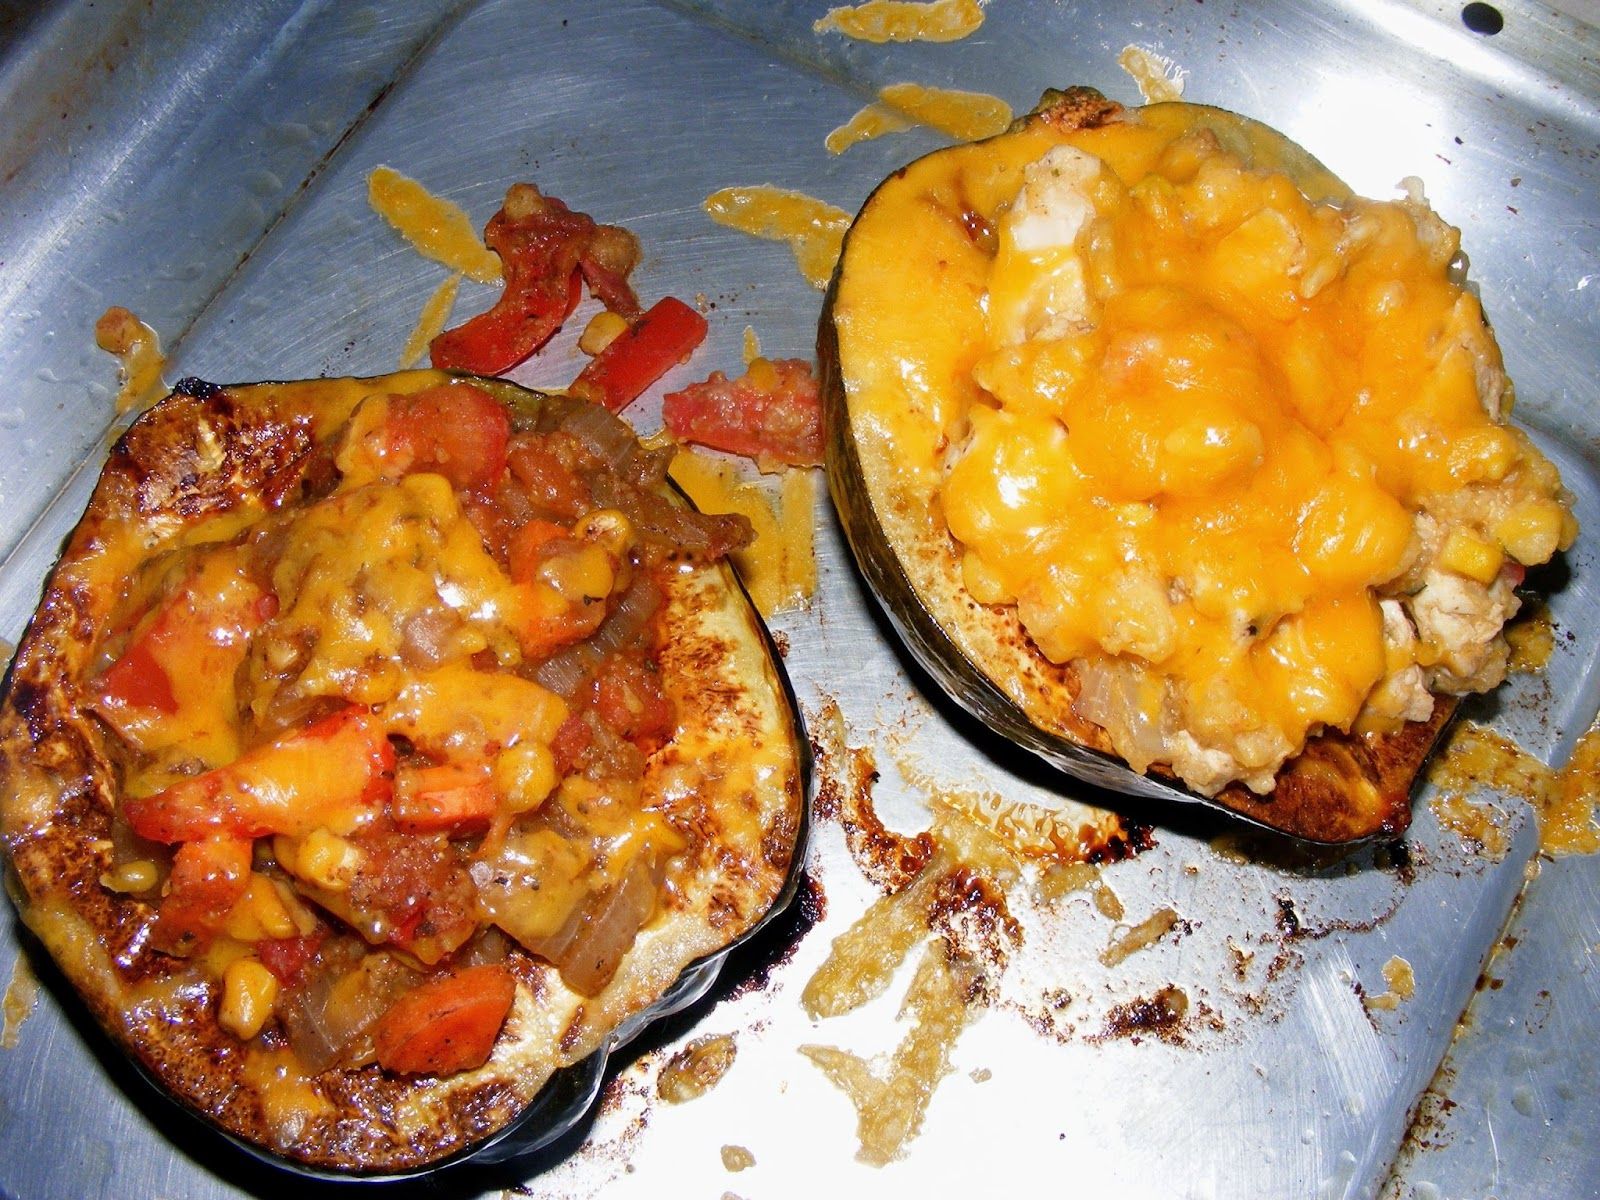 http://www.thesaladgirl.com/2008/10/11/polenta-stuffed-mexican-acorn-squash-blogger-secret-ingredient/